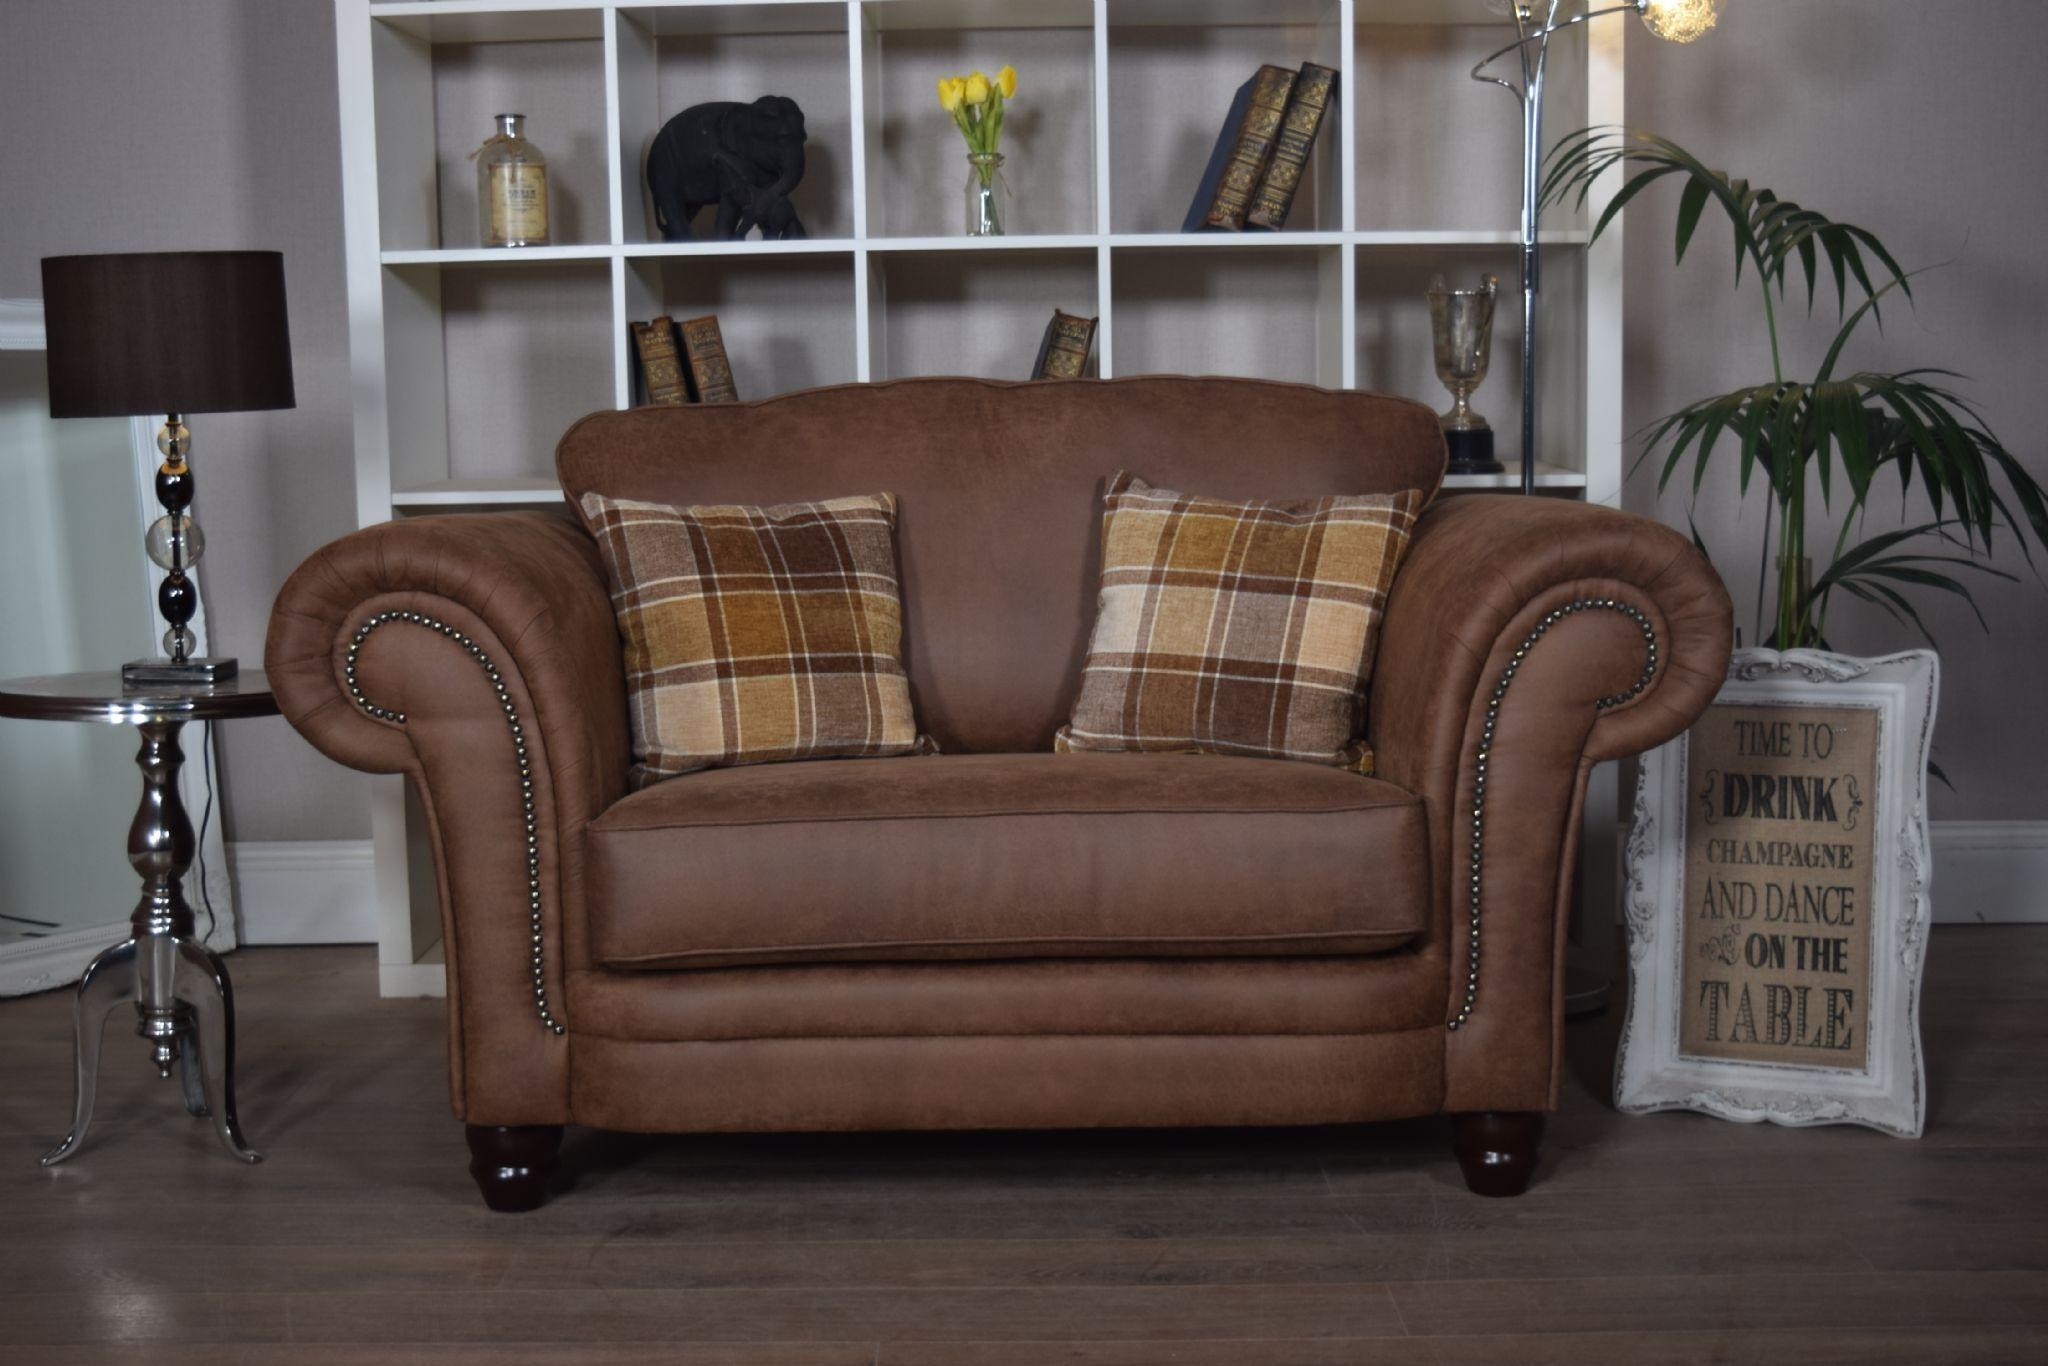 Set Abbey Downton 3 Seater Sofa & Large Cuddle Chair – Tan Fitted Back Within 3 Seater Sofa And Cuddle Chairs (View 19 of 20)